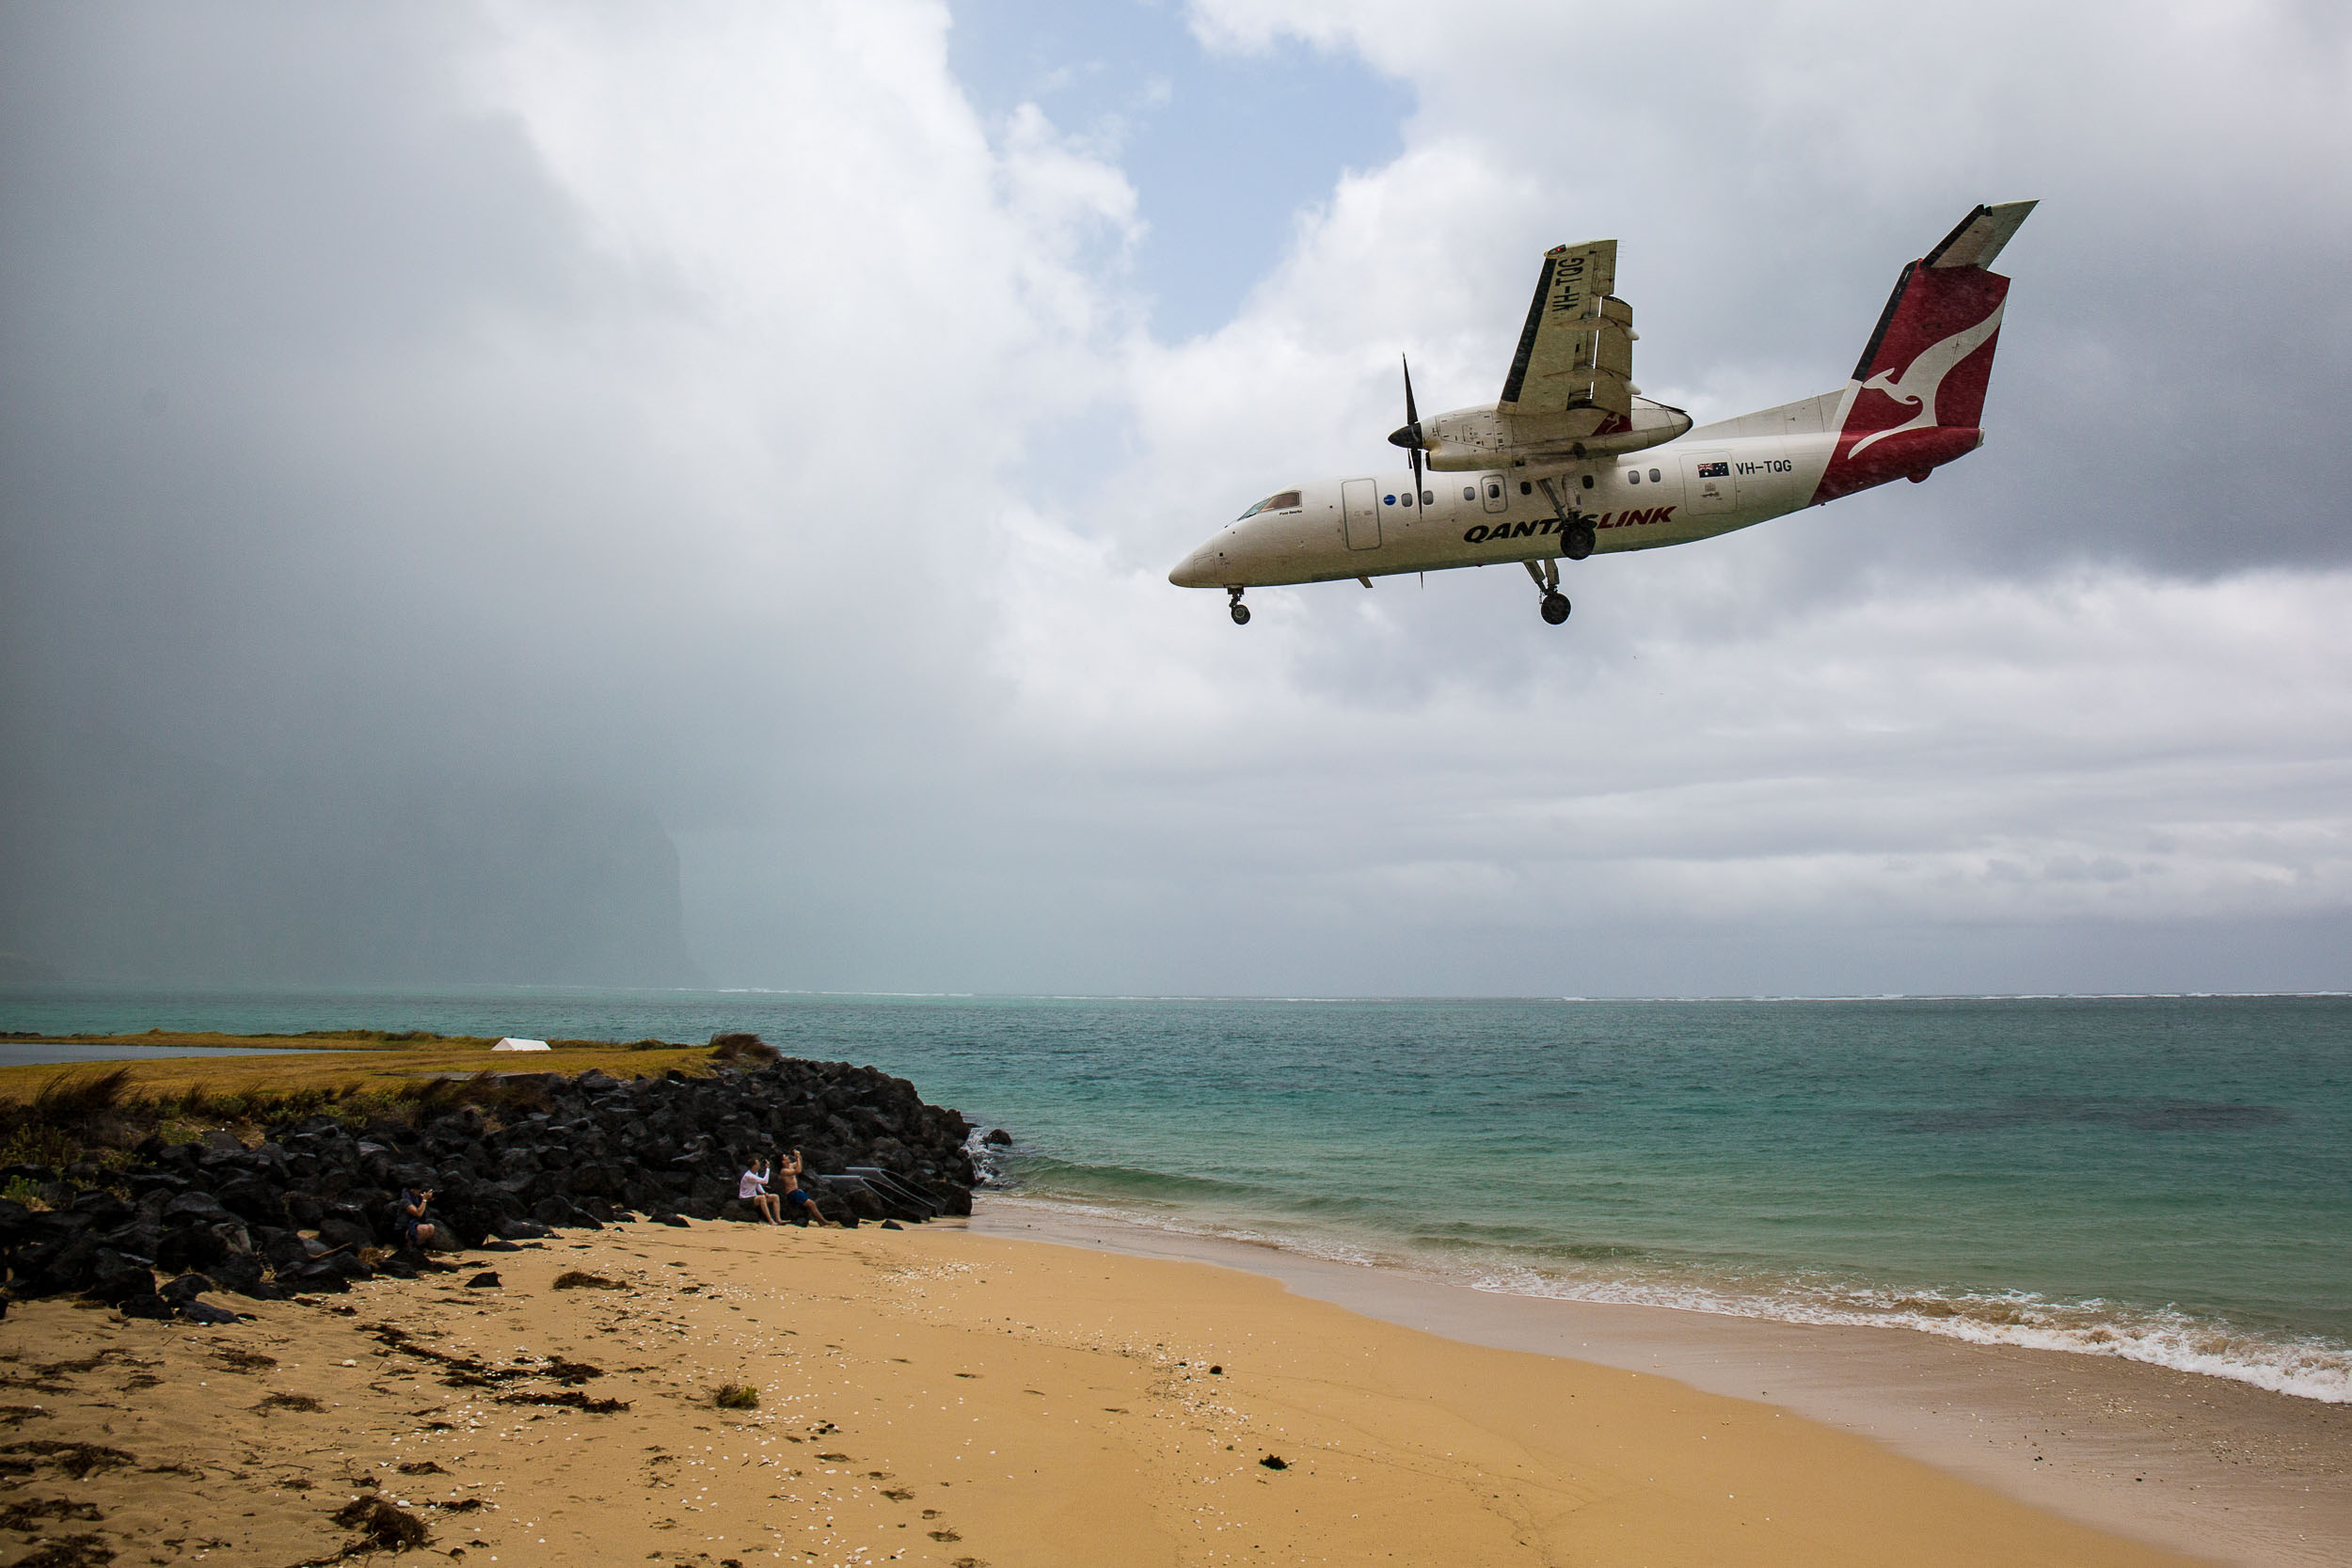 Lord Howe Island airport's is accessible to say the least, Australia